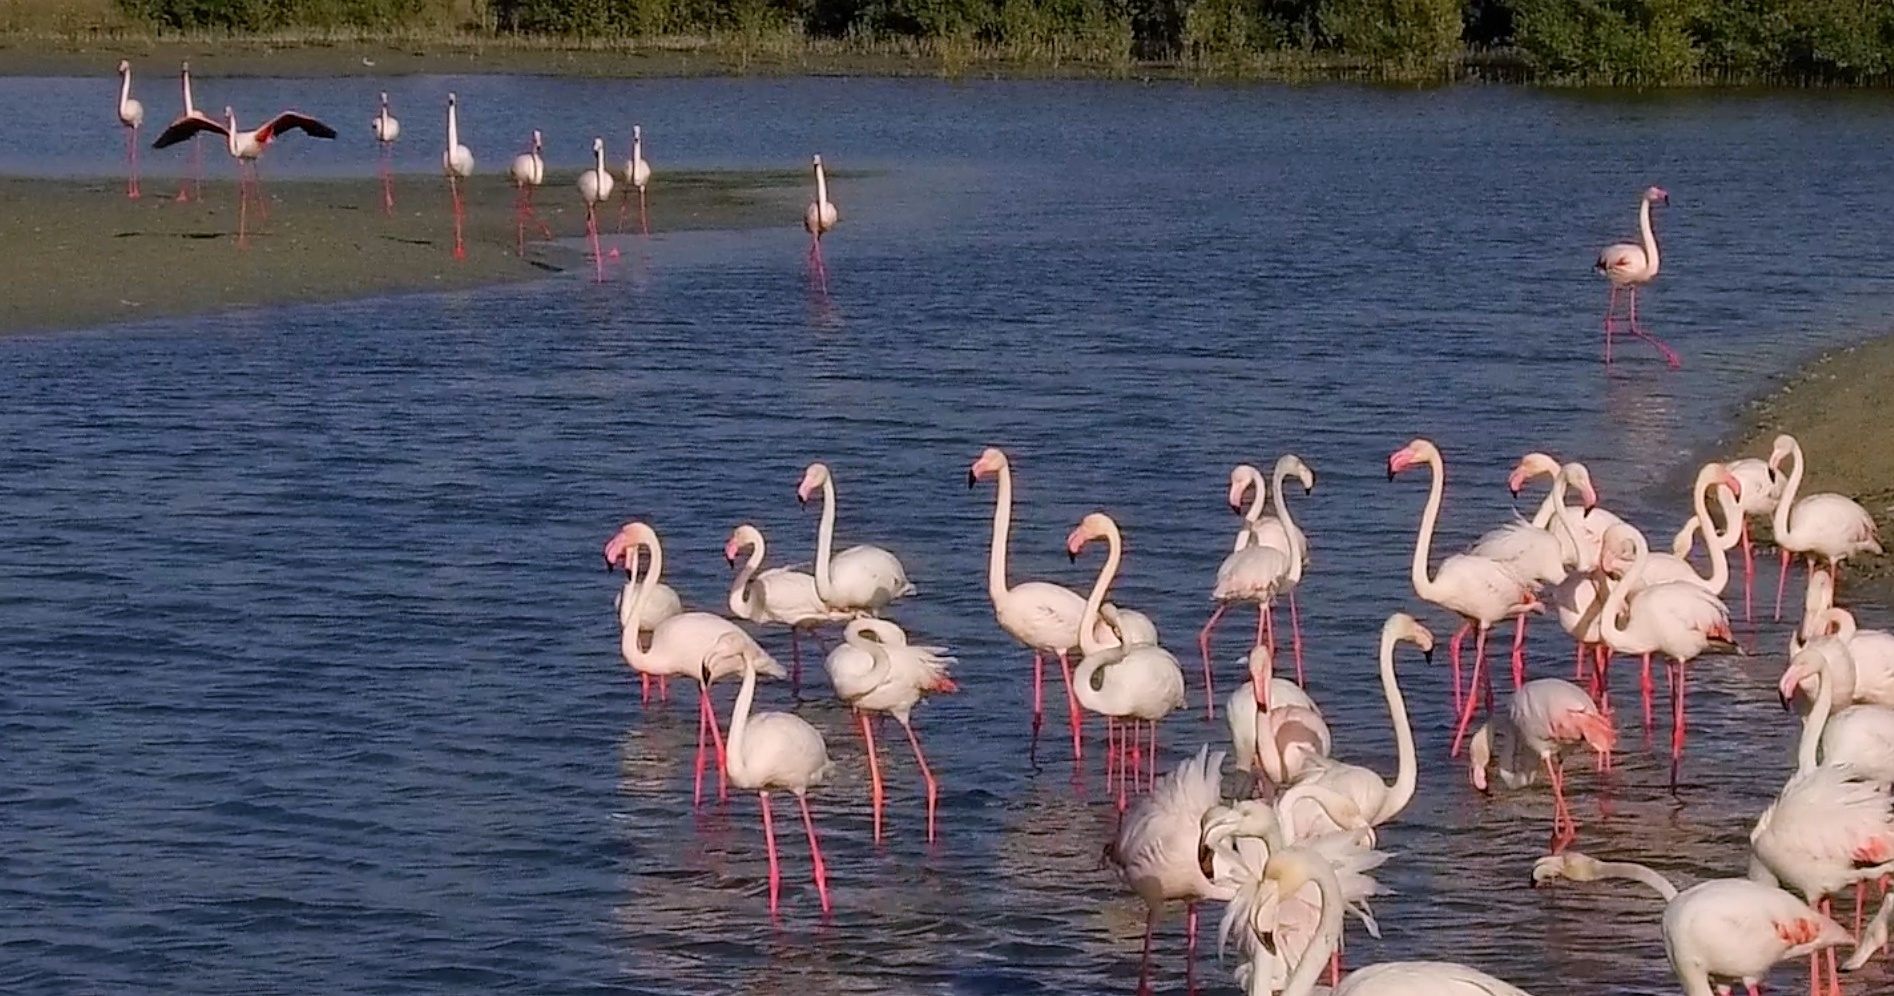 free-things-to-do-in-dubai-flamingos-in-dubai-ras-al-khor-wildlife-sanctuary